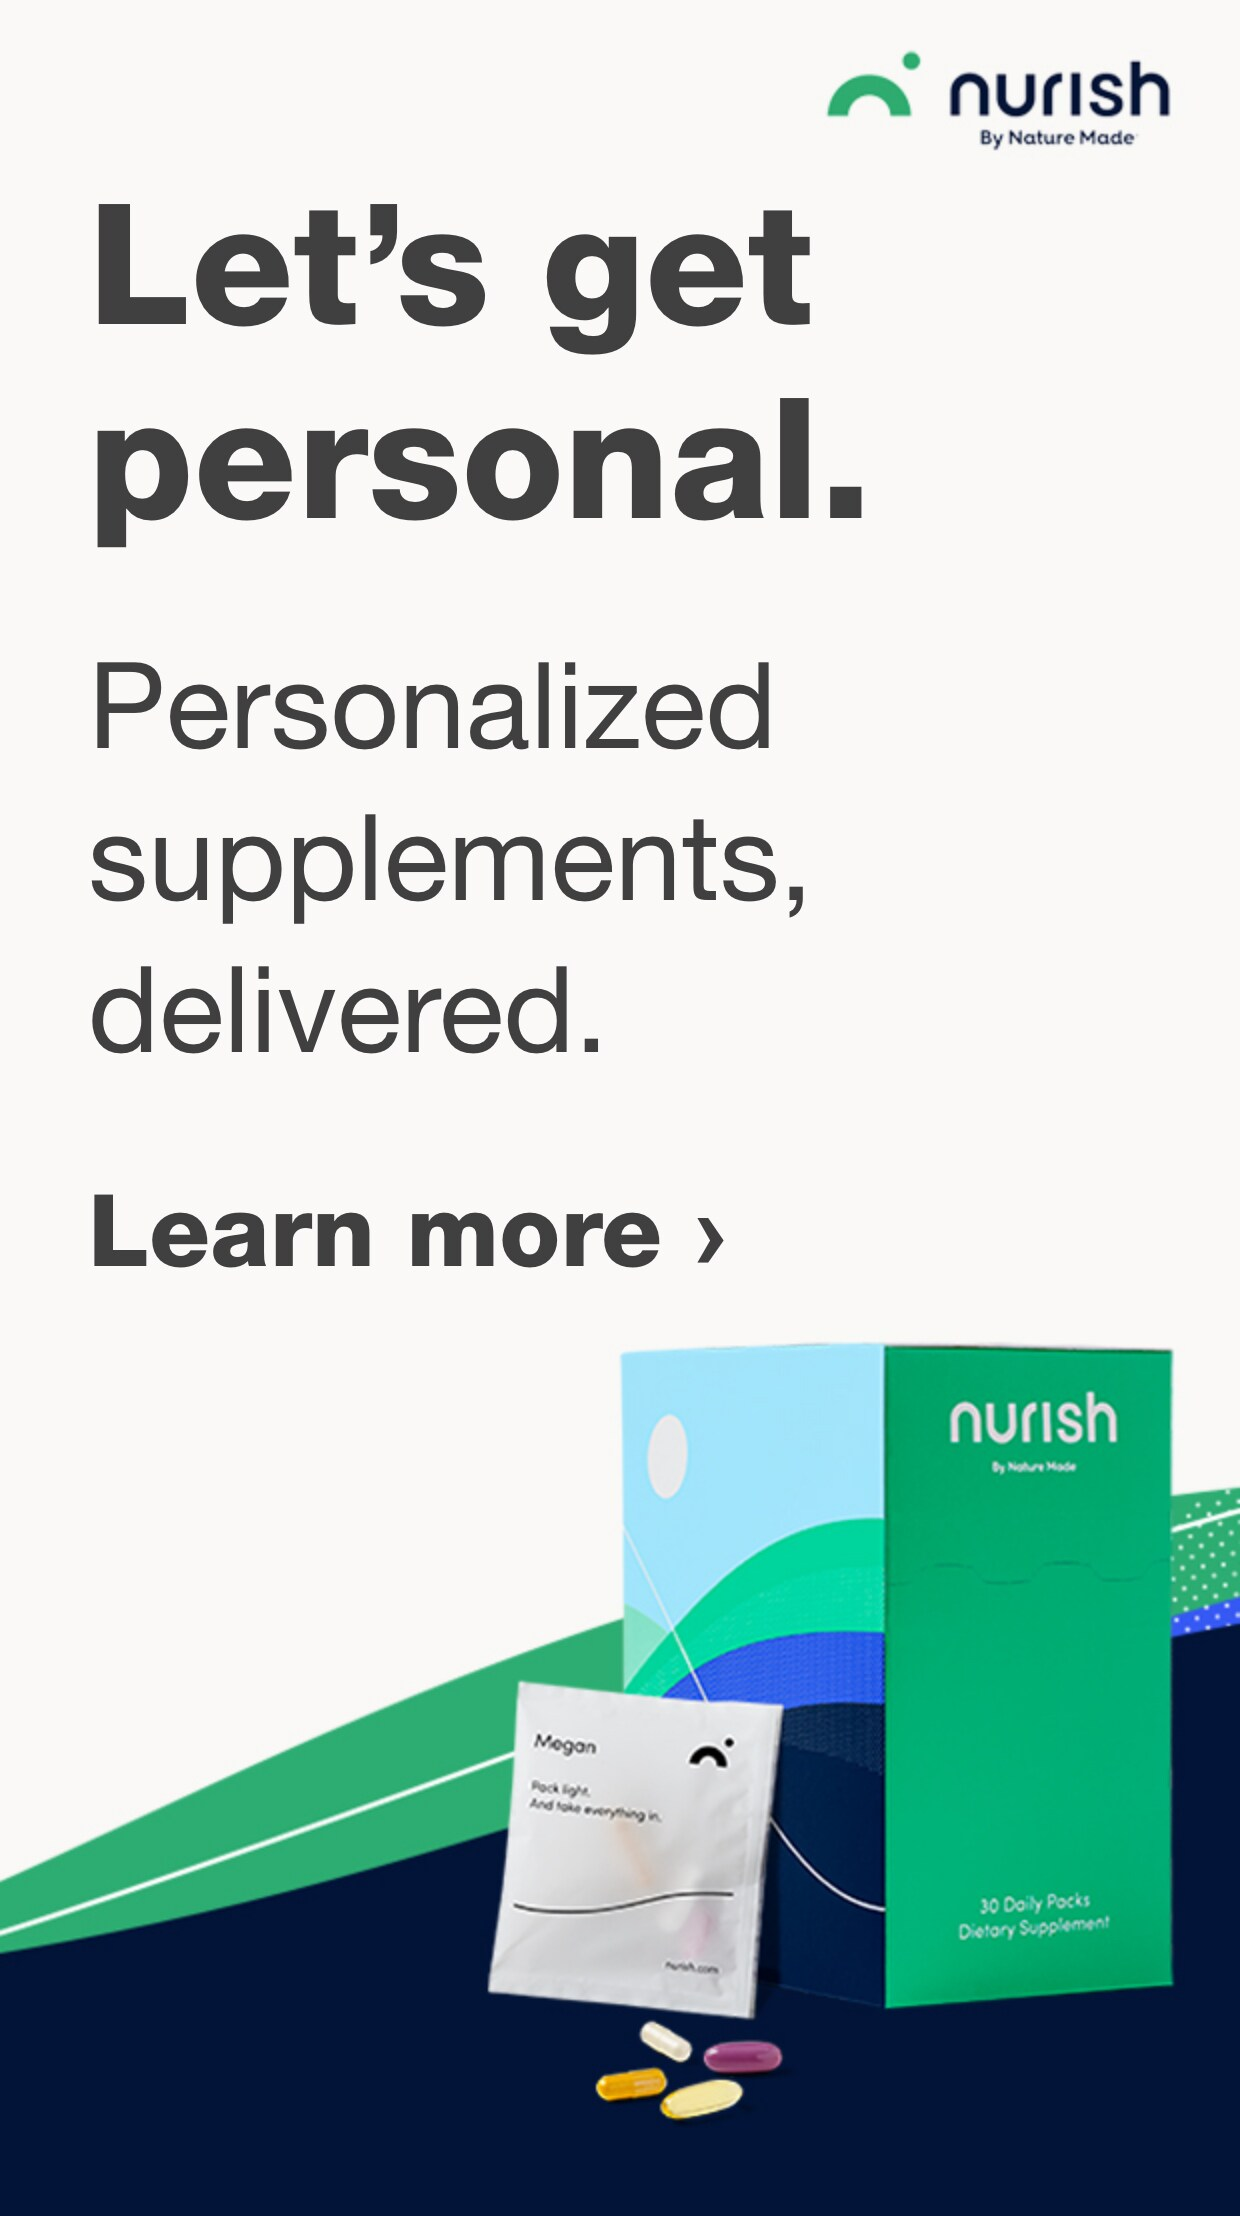 Let's get personal. Personalized supplements, delivered. nurish by Nature Made. Learn more.